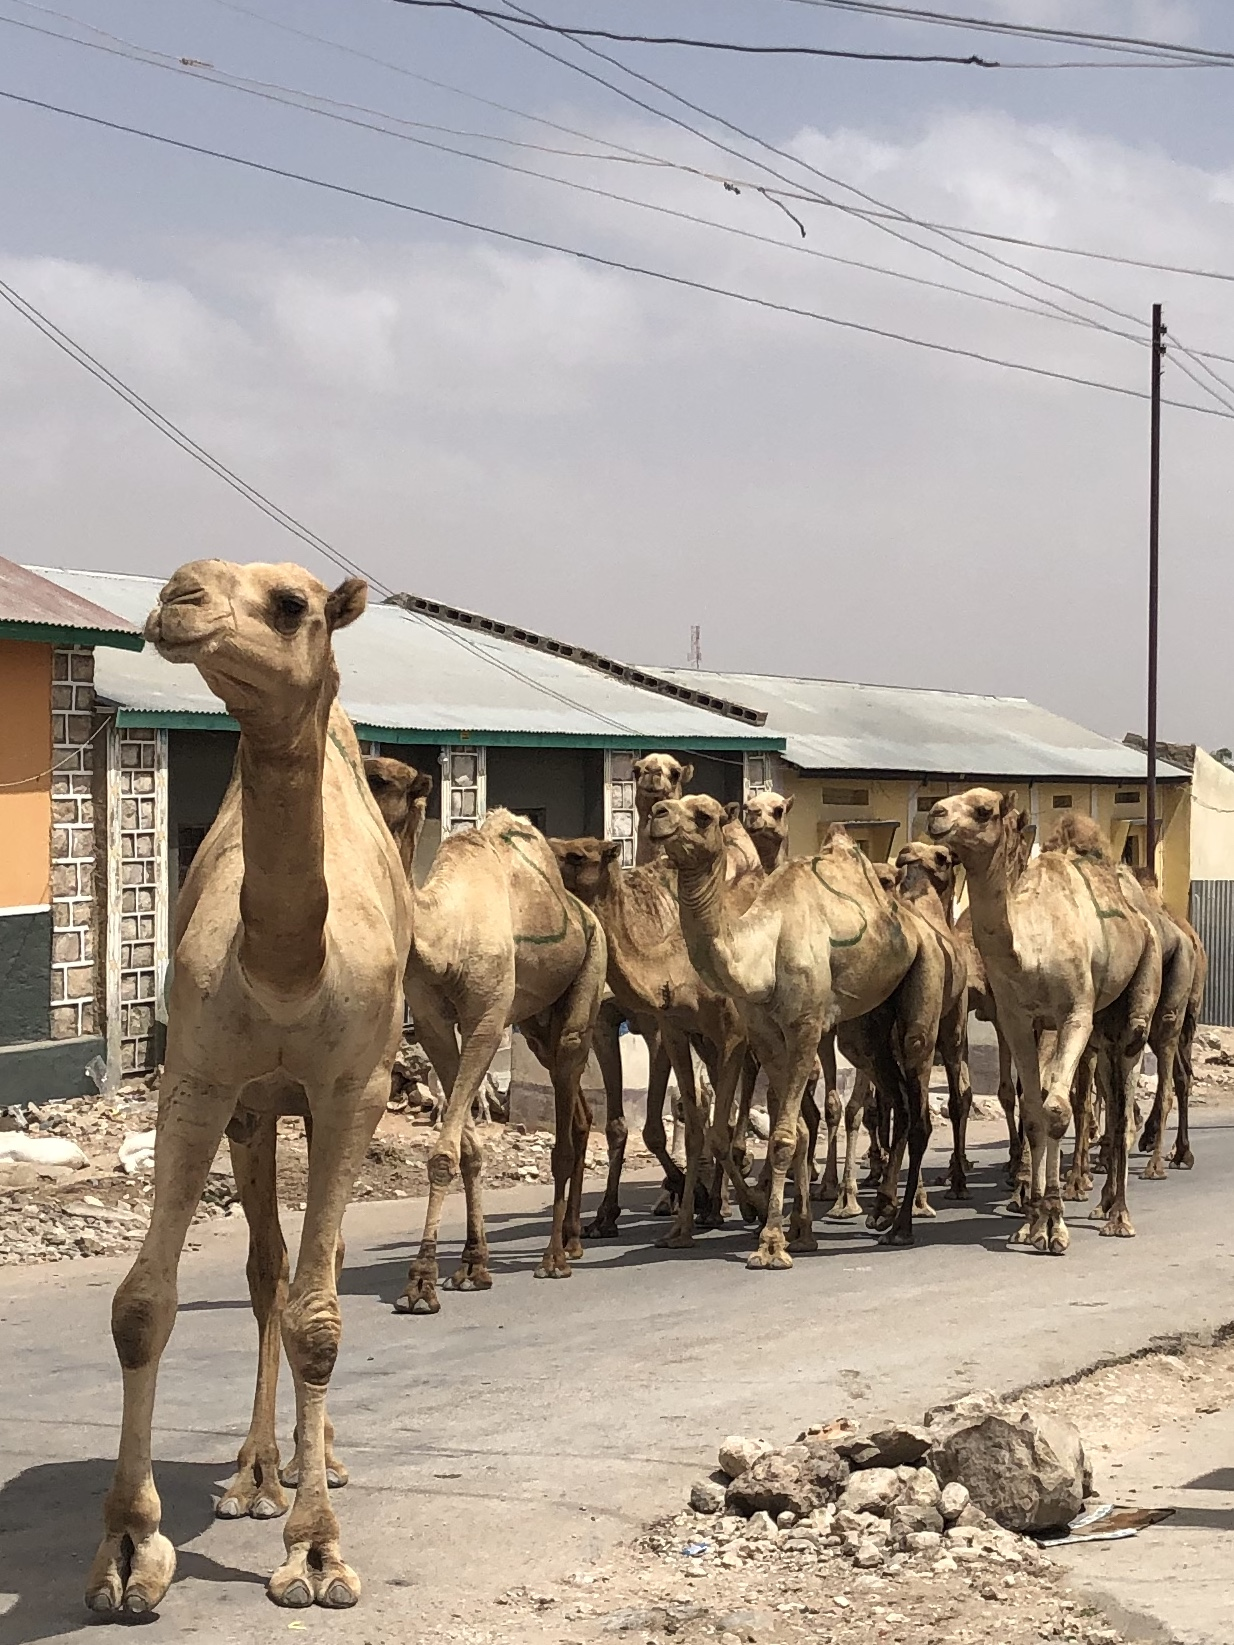 Camels roaming the streets just like the cows do in eSwatini